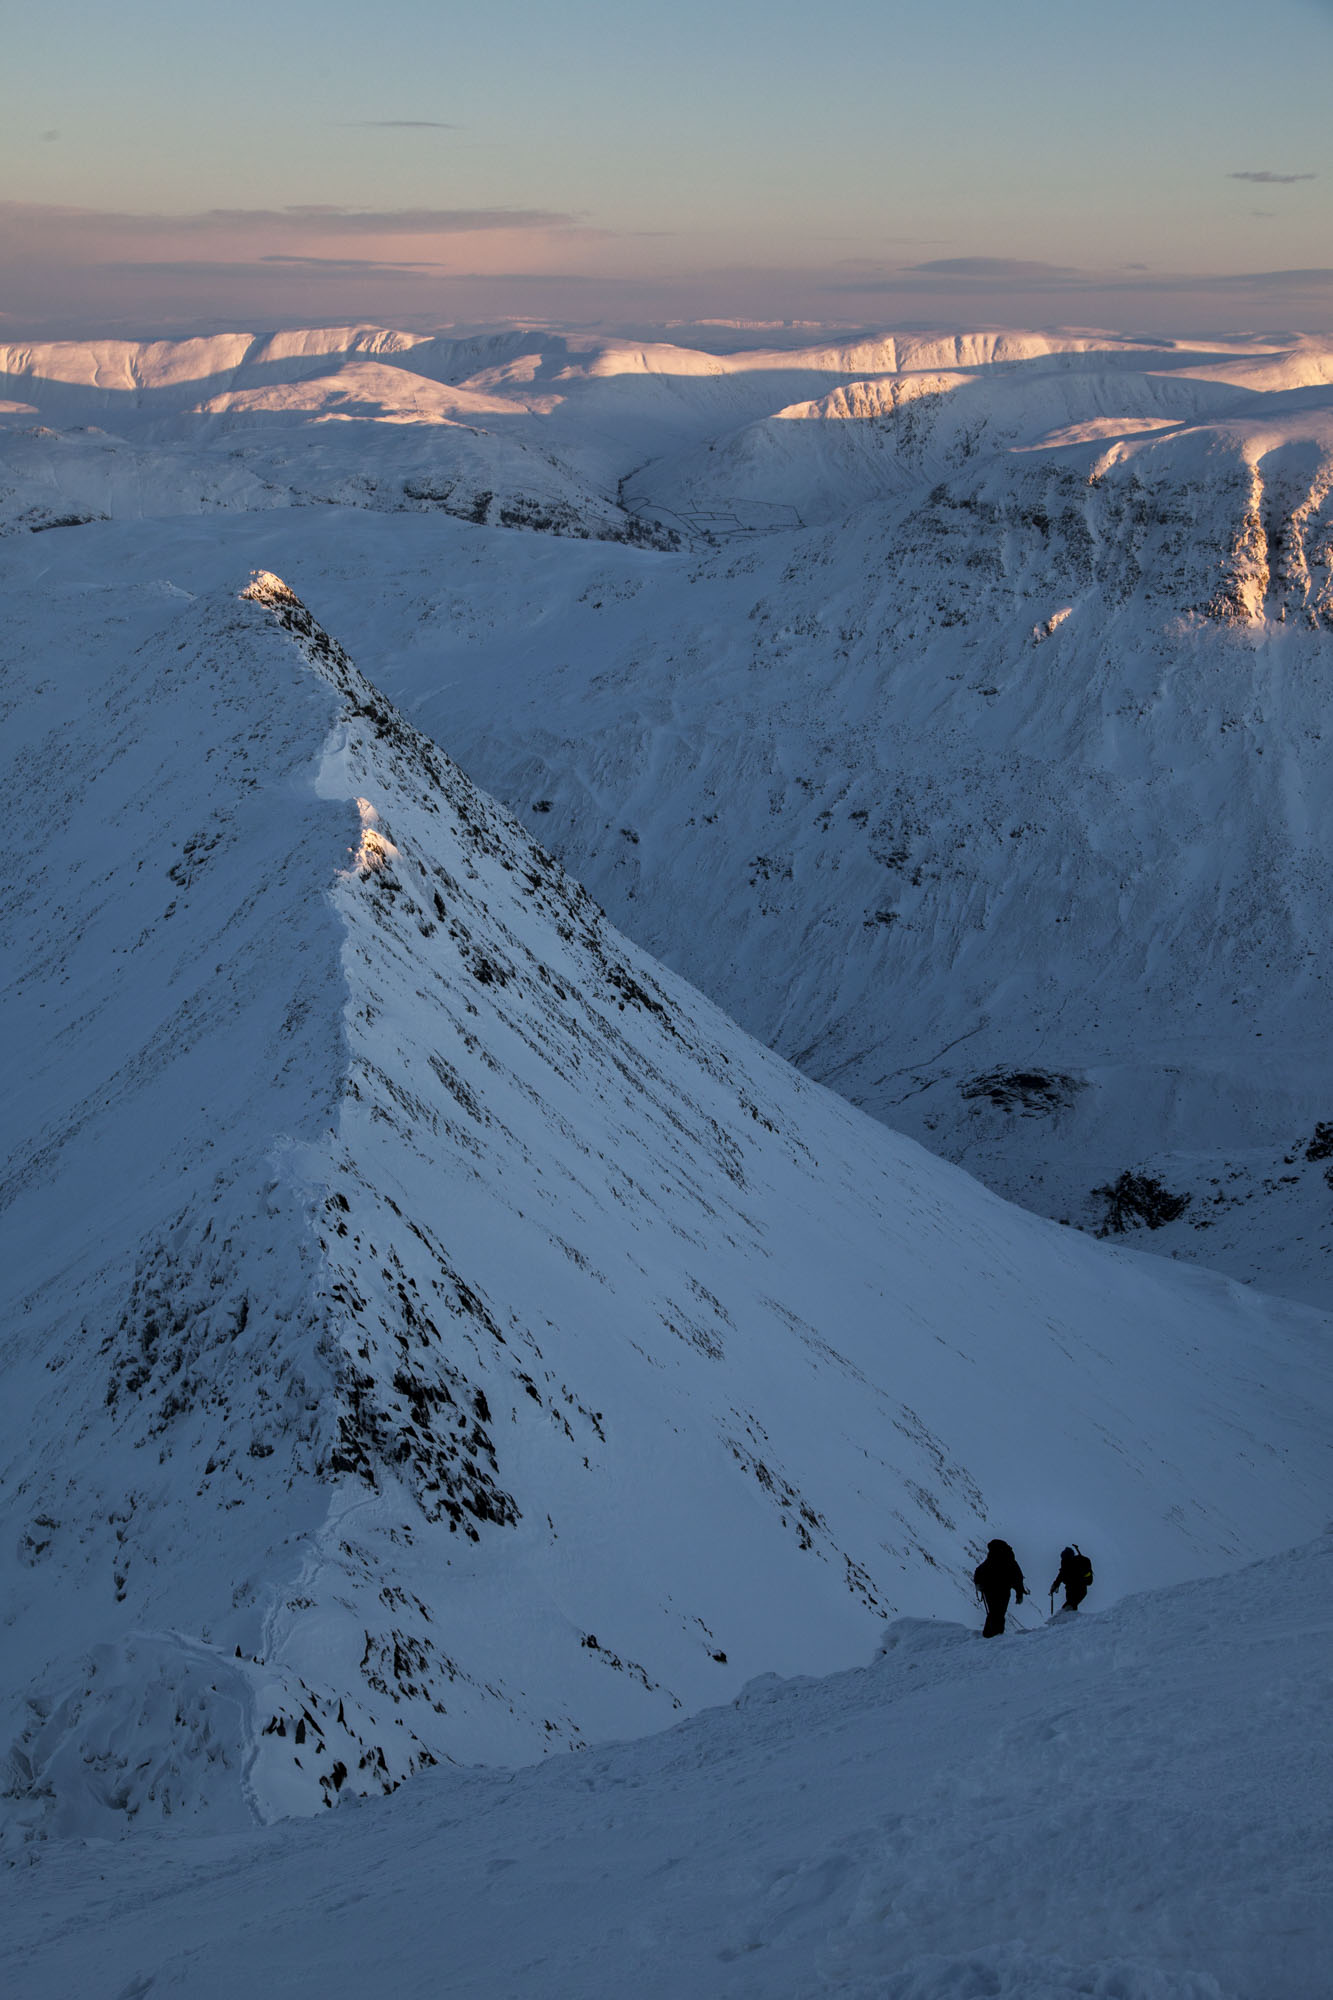 Climbers making a late ascent of Striding Edge on Helvellyn. Canon 5D MkII, 24-105mm at 45mm, ISO 200, 1/160 sec at f/9, January. © Stuart Holmes.